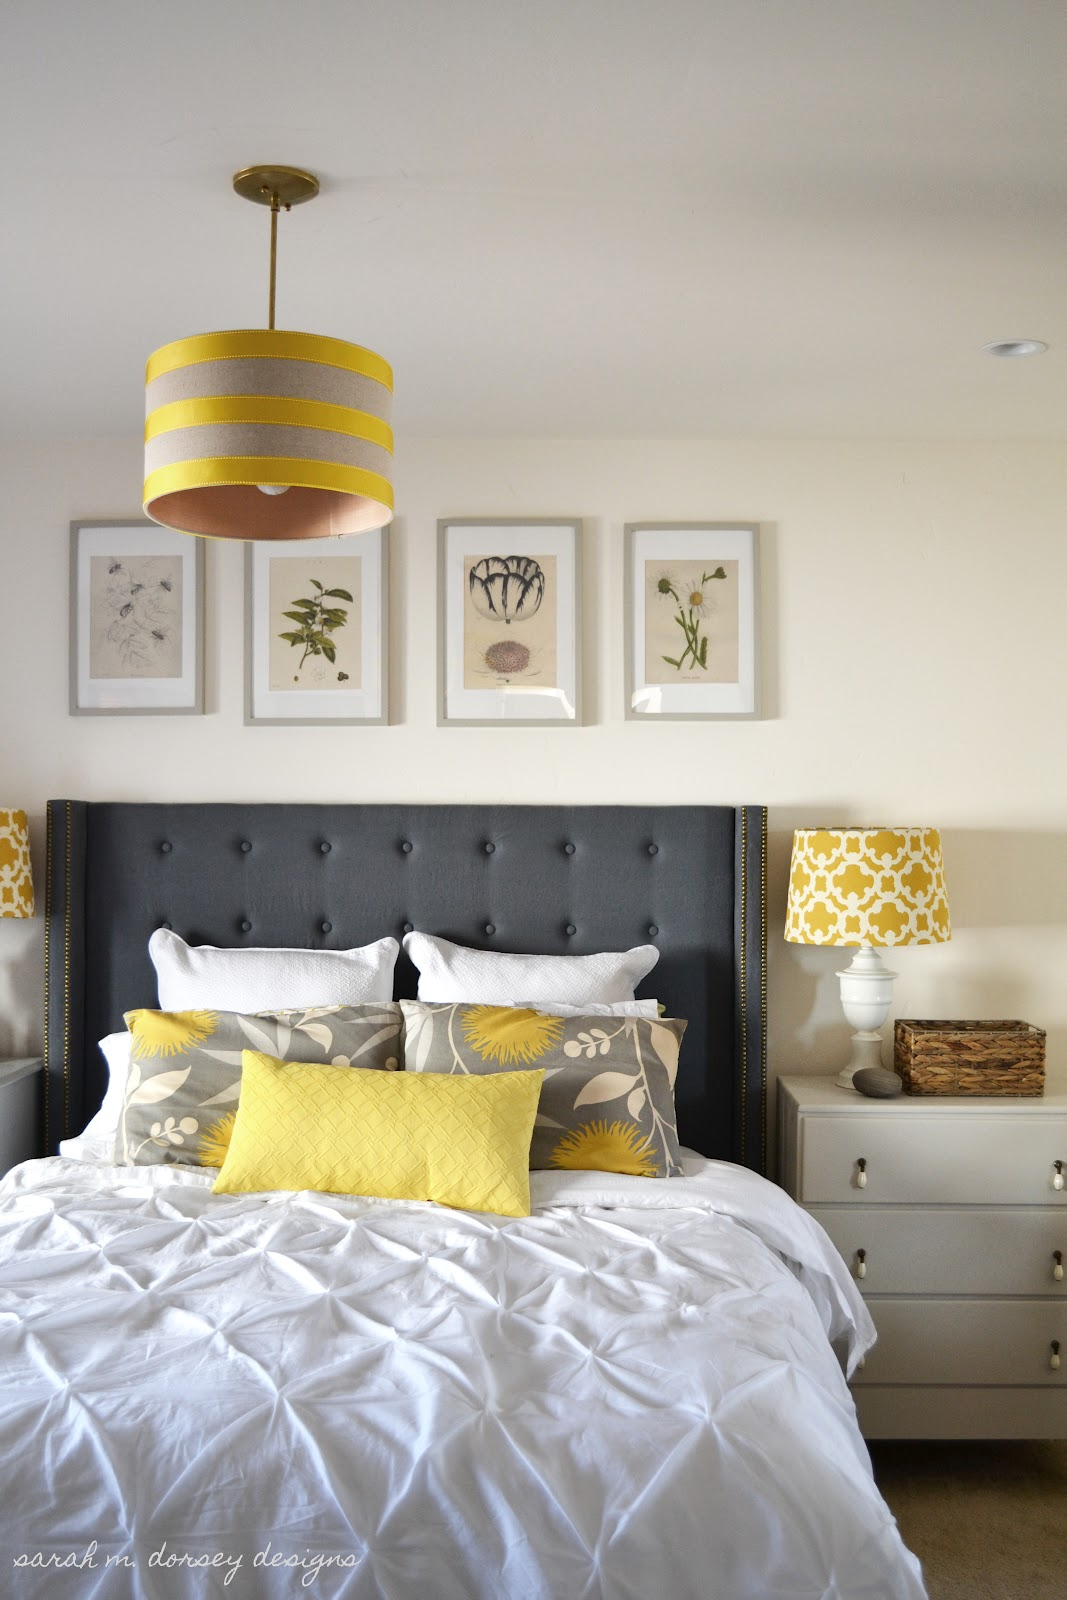 Bedroom Design Grey And Yellow Sarah M Dorsey Designs Art For Above The Headboard Take 1